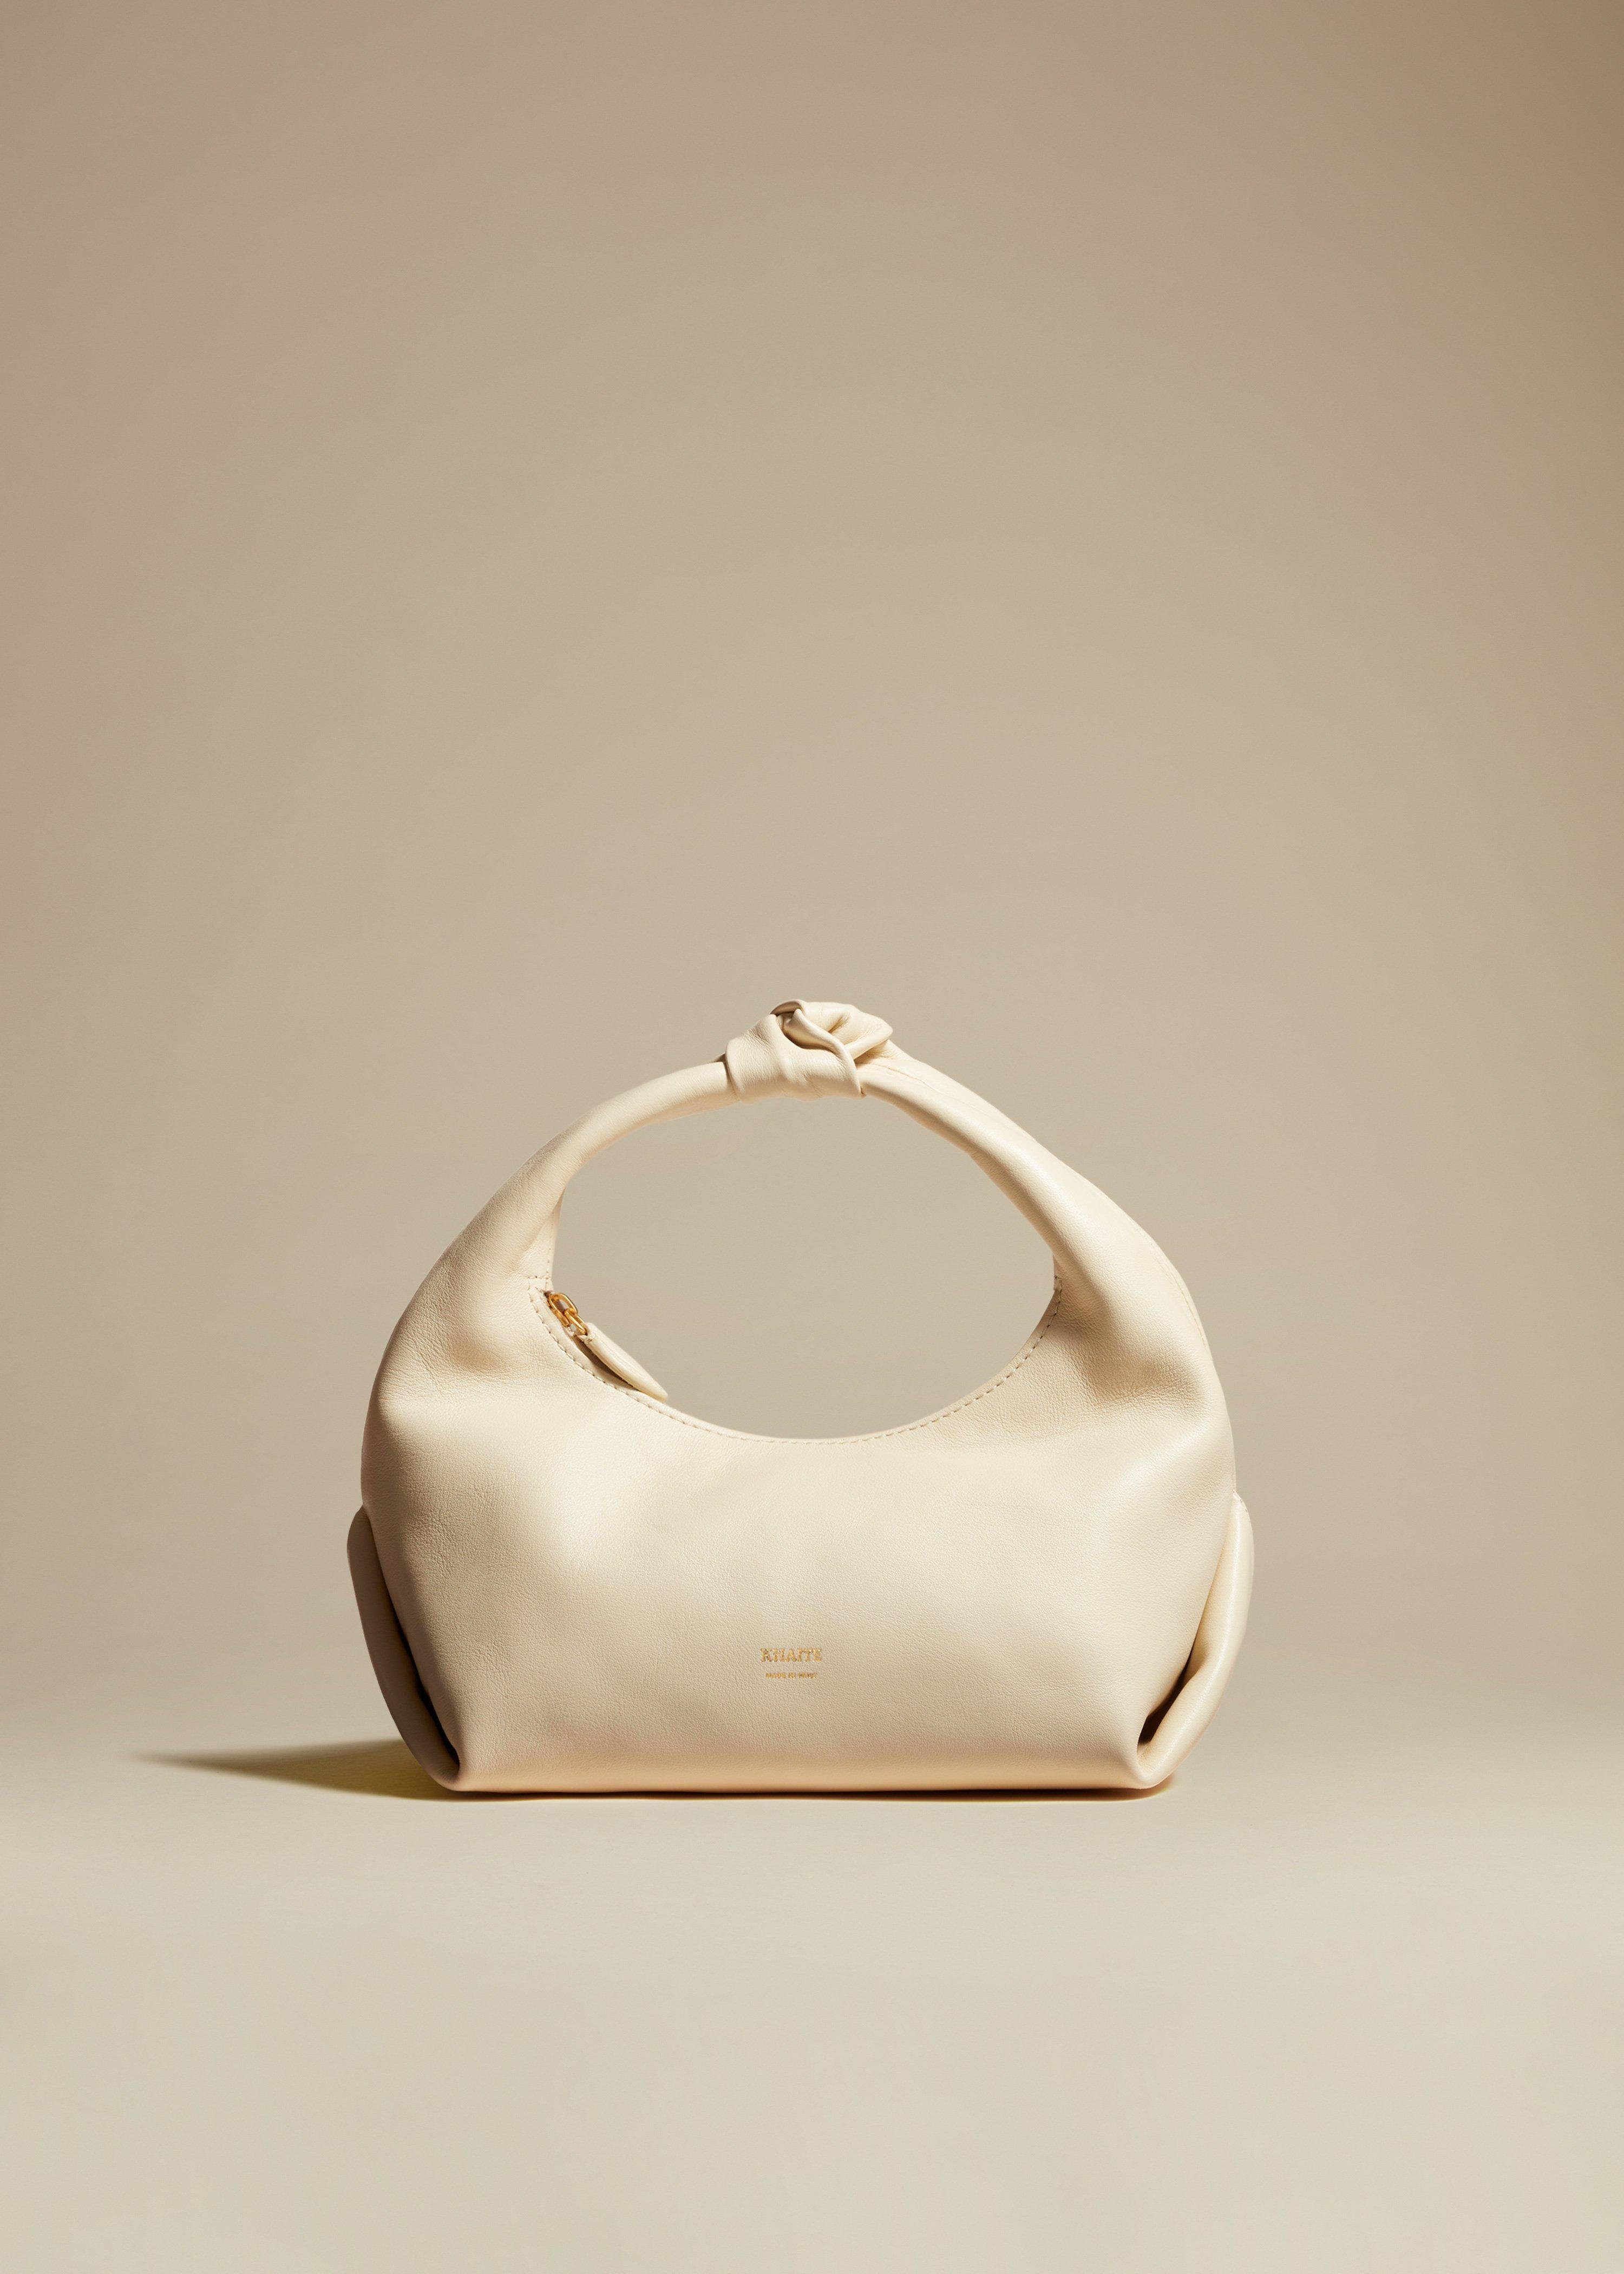 The Small Beatrice Hobo in Cream Leather